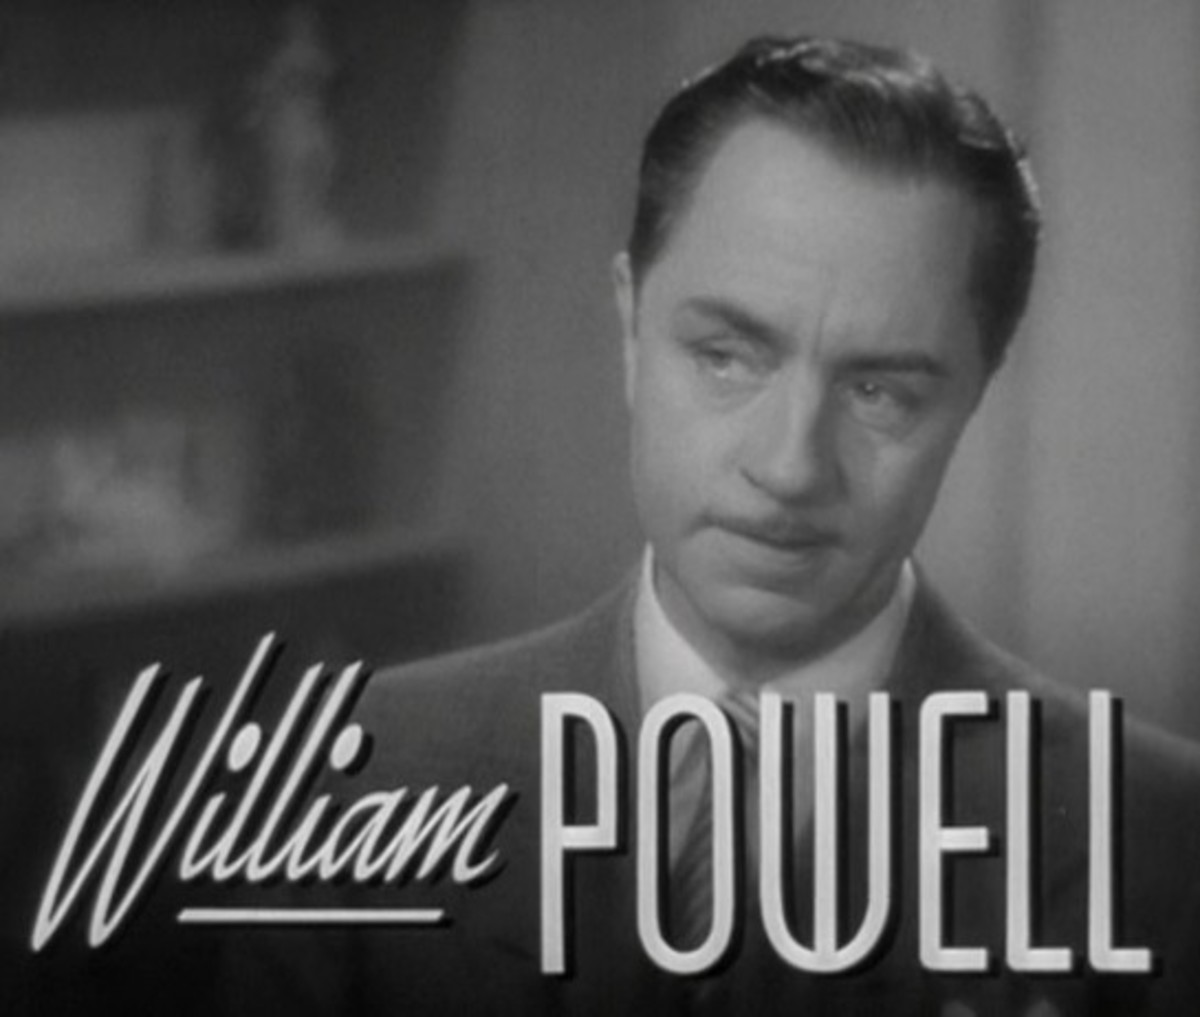 William Powell in a screenshot from the trailer for Another Thin Man (1939)